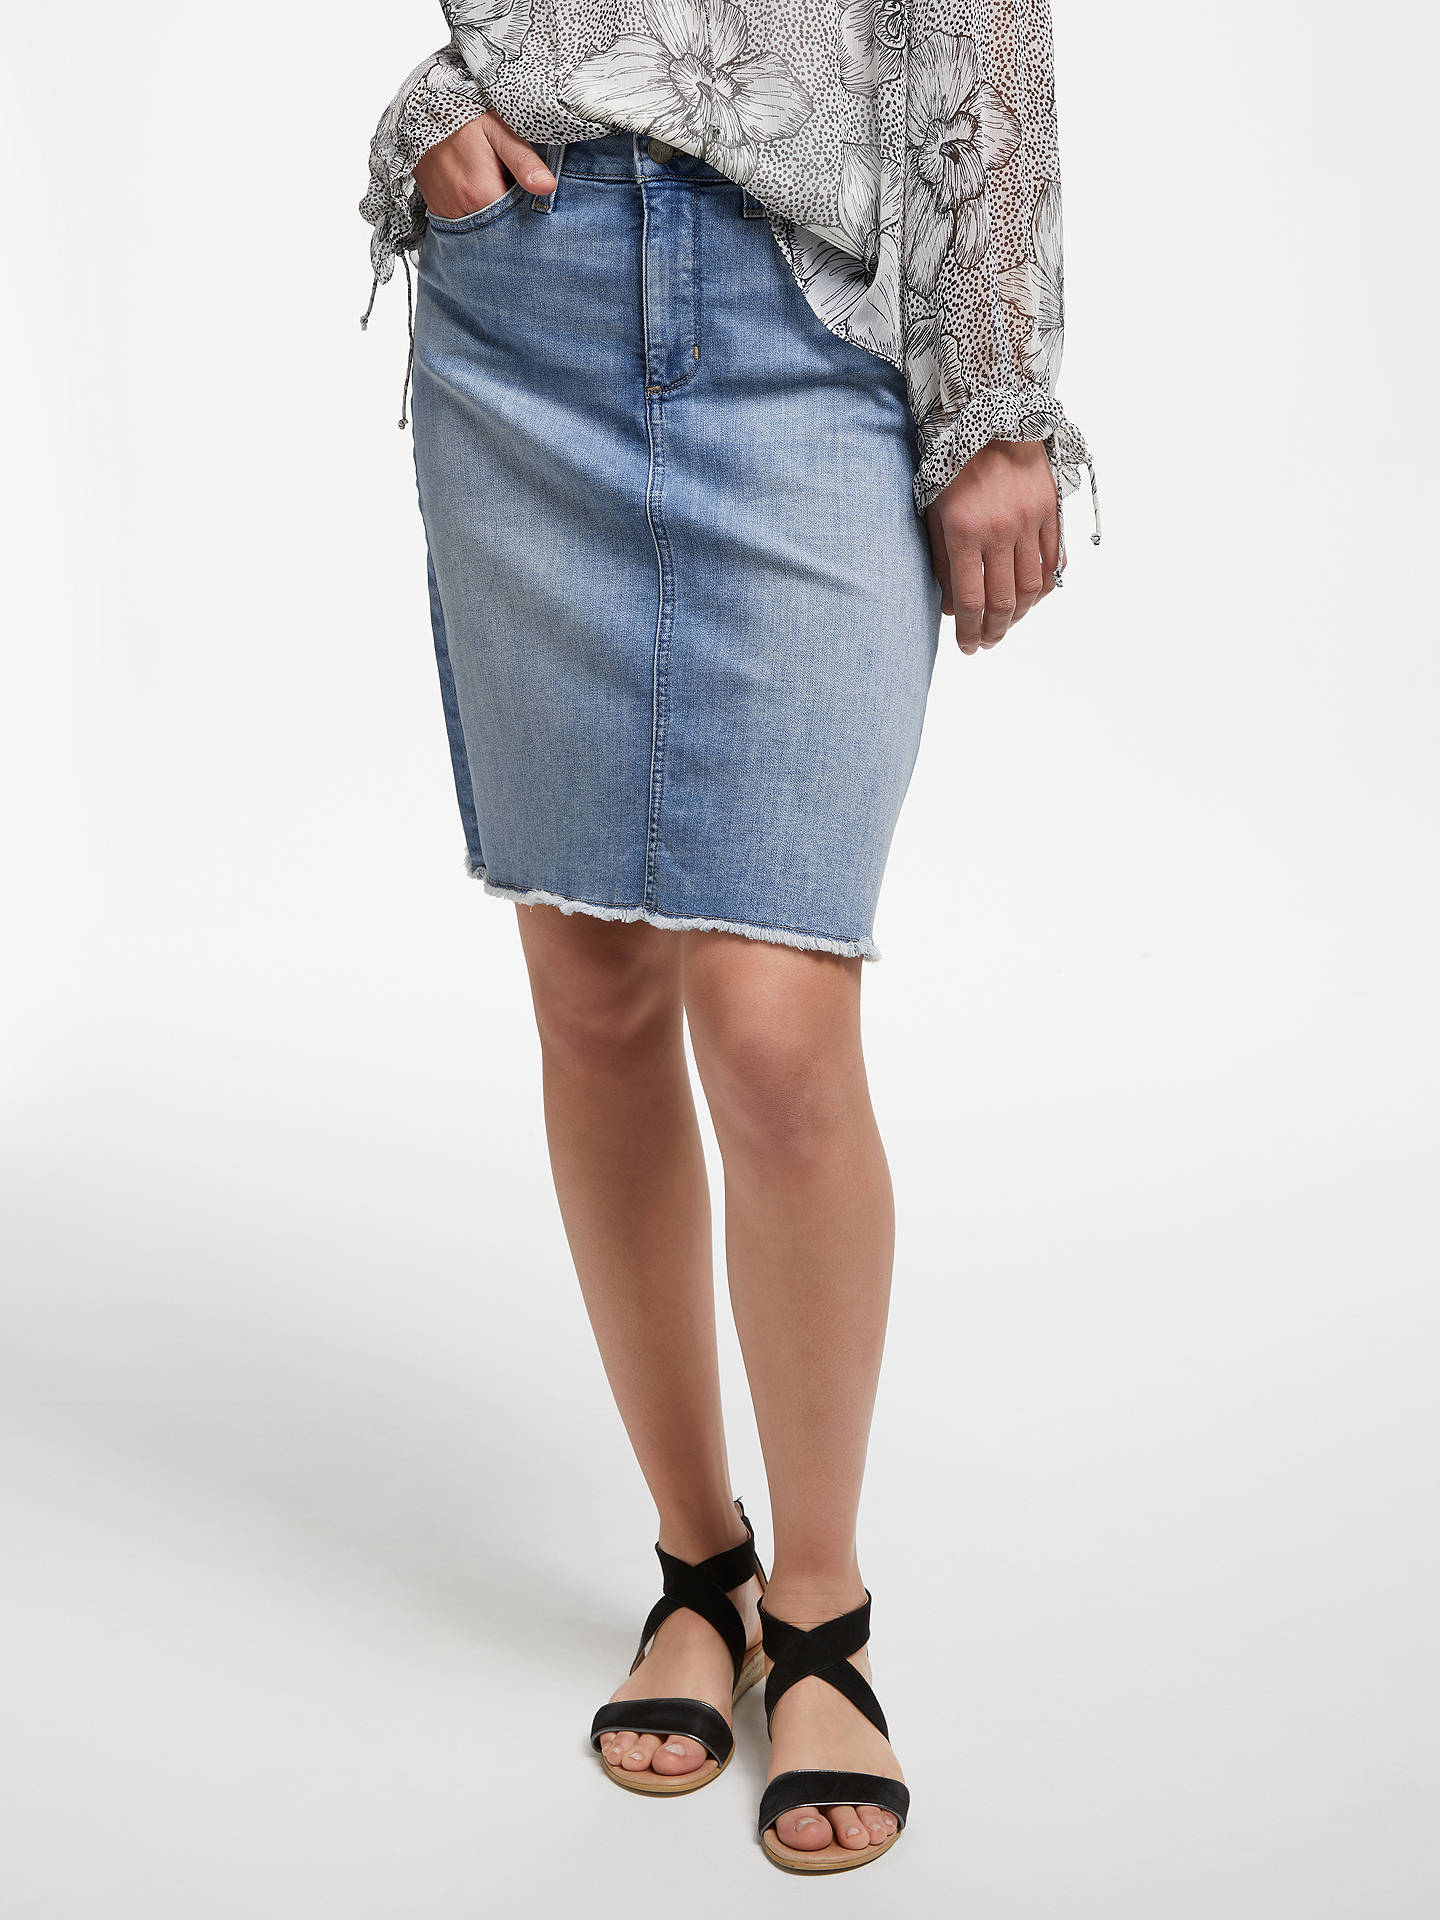 0bdb32aa1d Buy NYDJ Frayed Hem Denim Skirt, Dreamstate, 8 Online at johnlewis.com ...